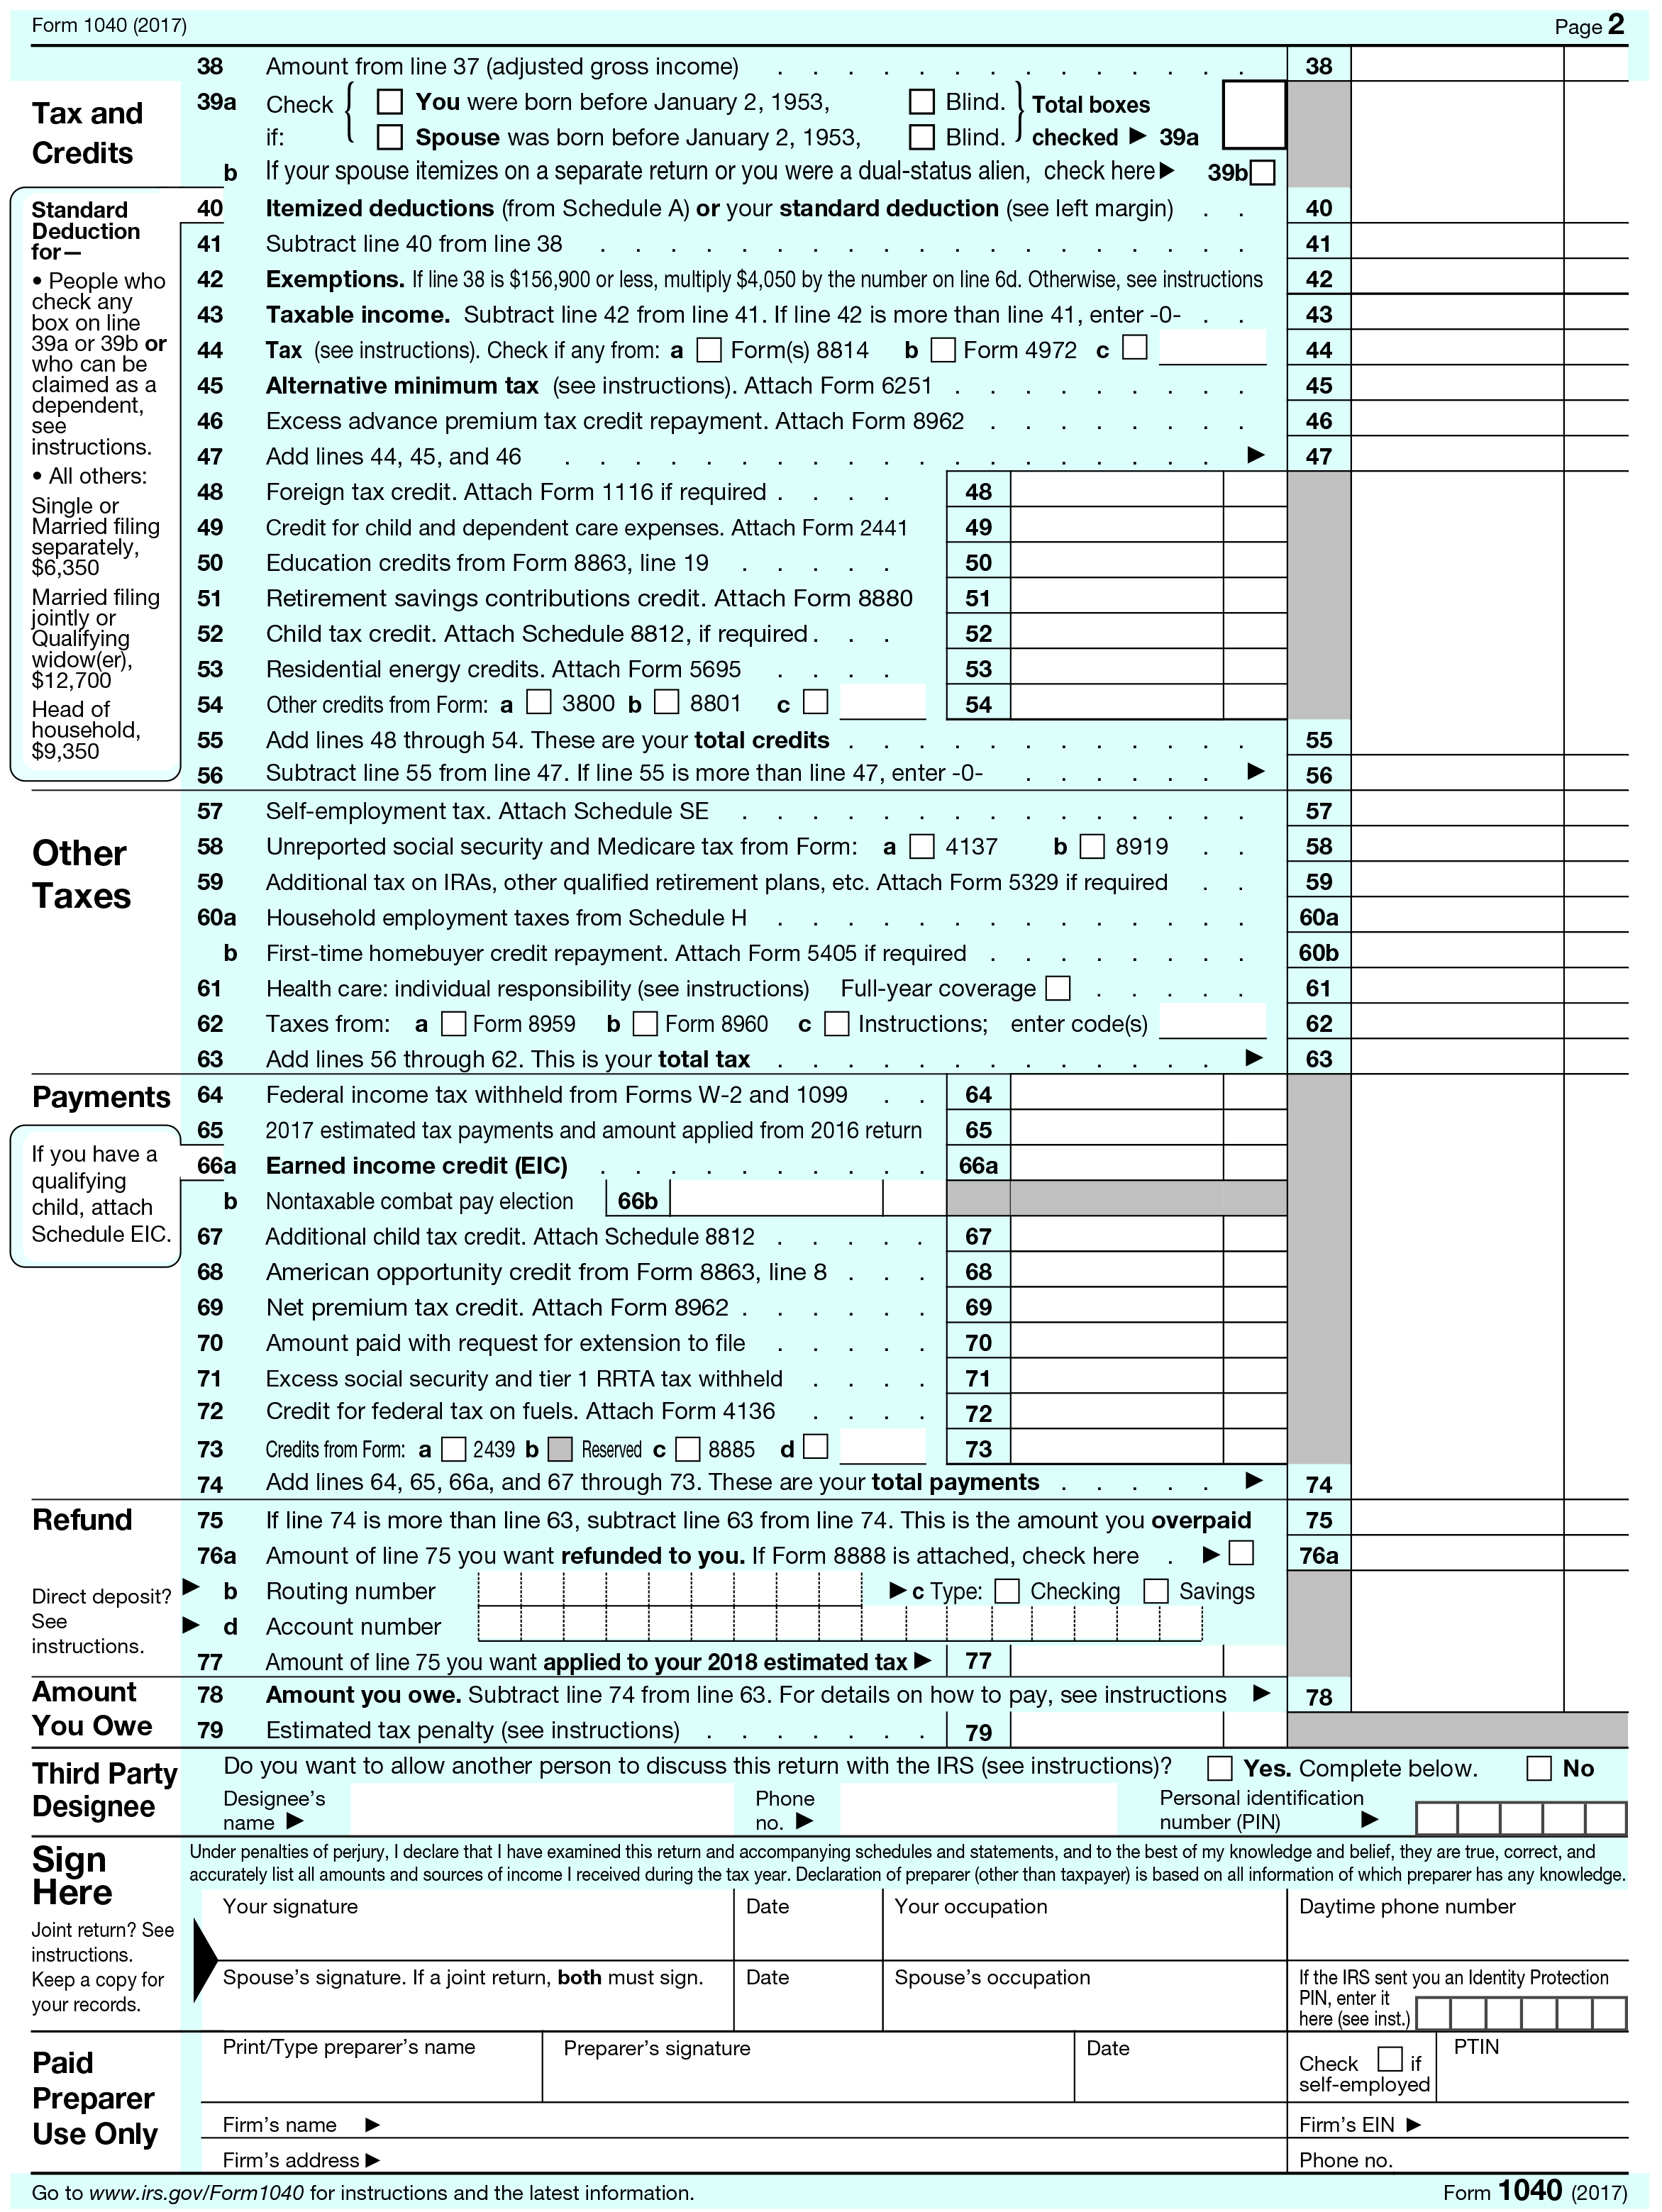 Form Line 44 Tax Table